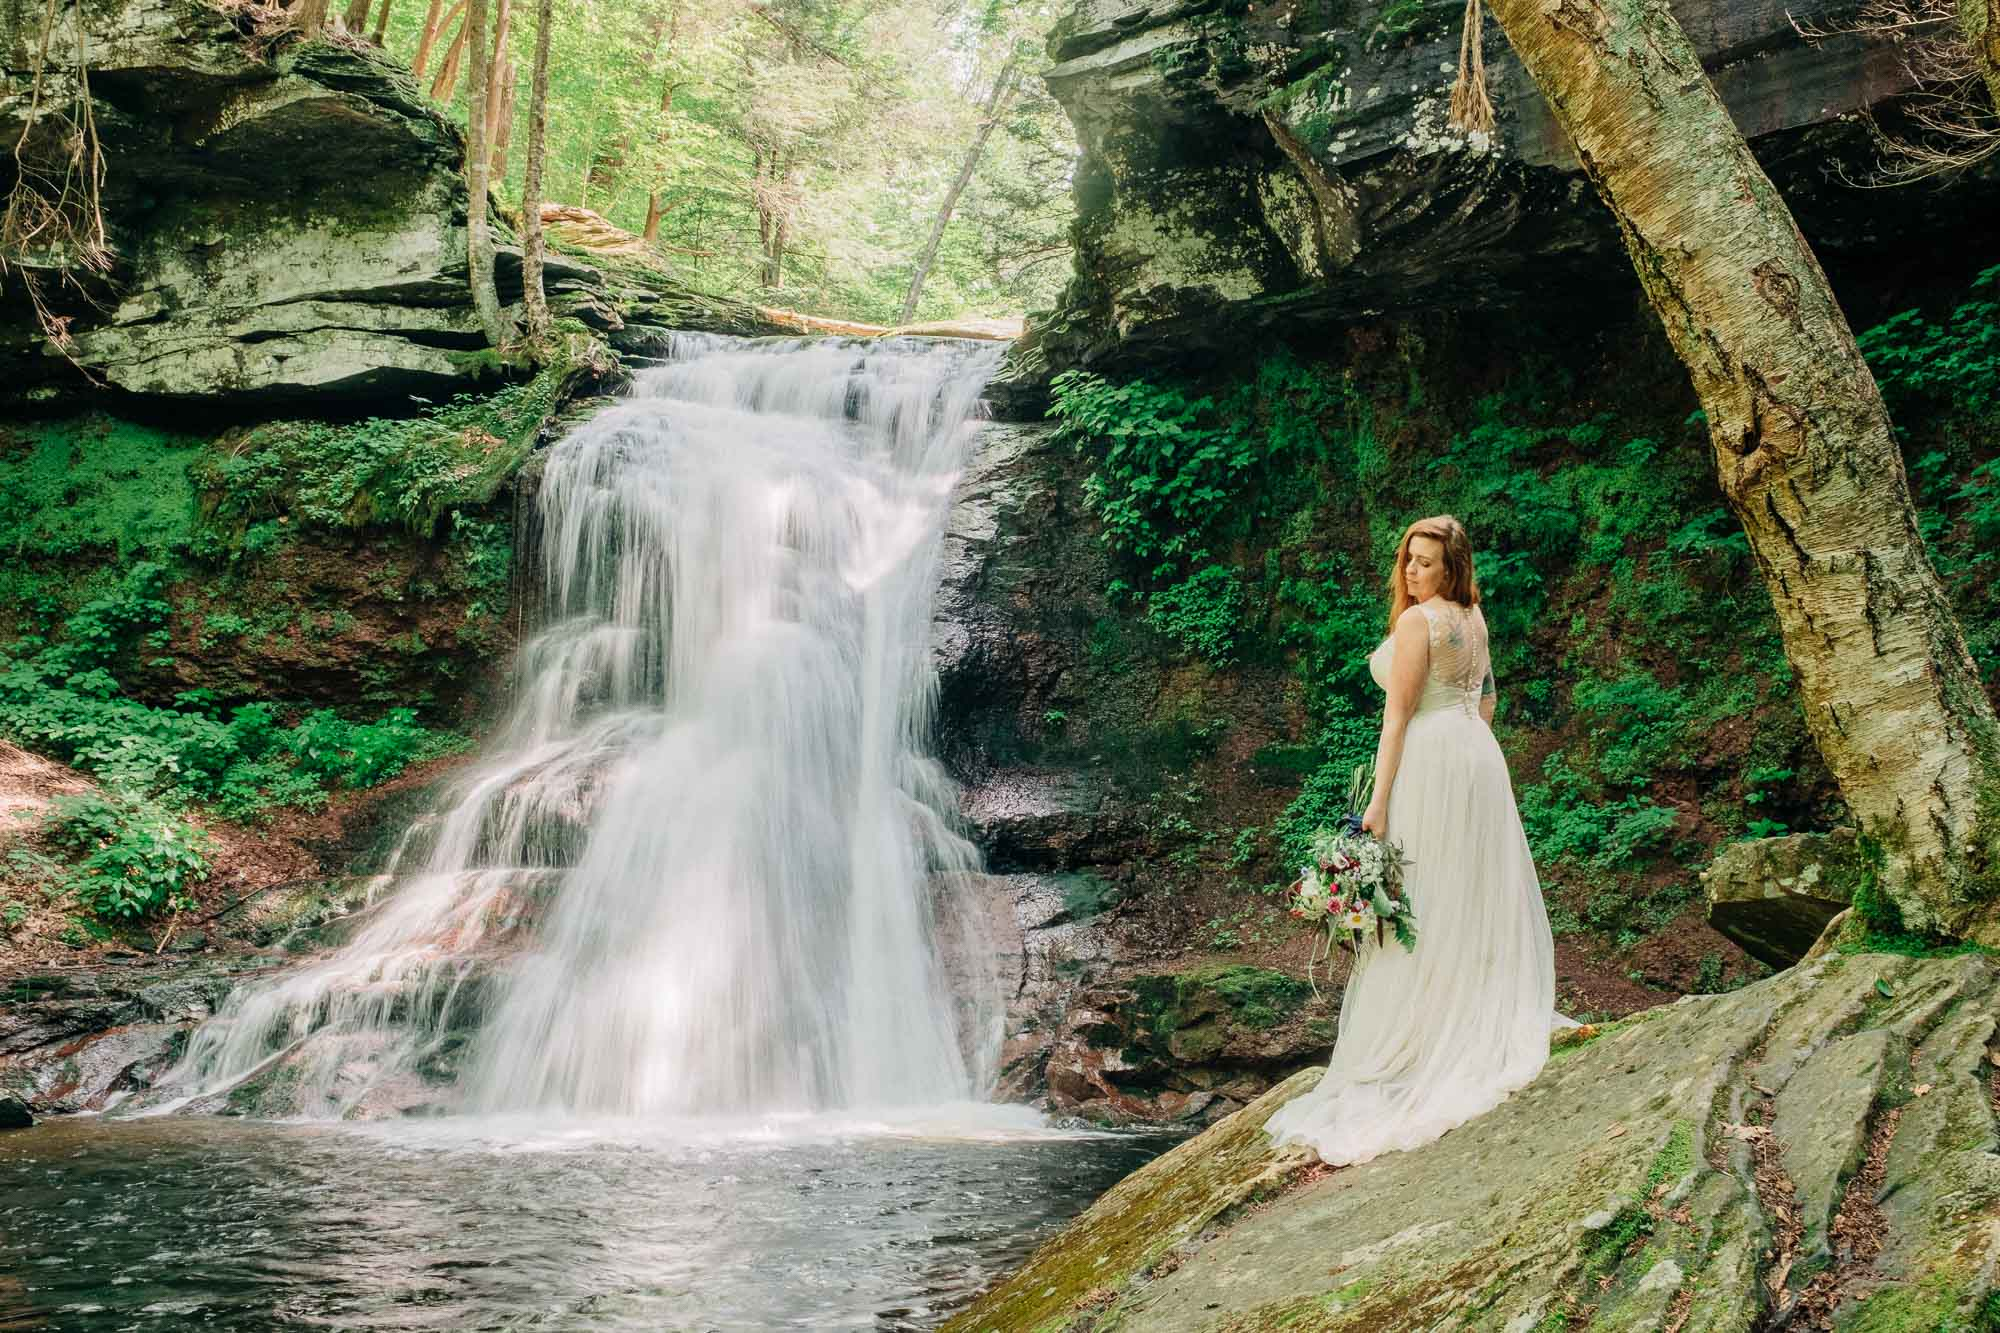 Ricketts-glen-pennsylvania-waterfall-elopement-2937.jpg